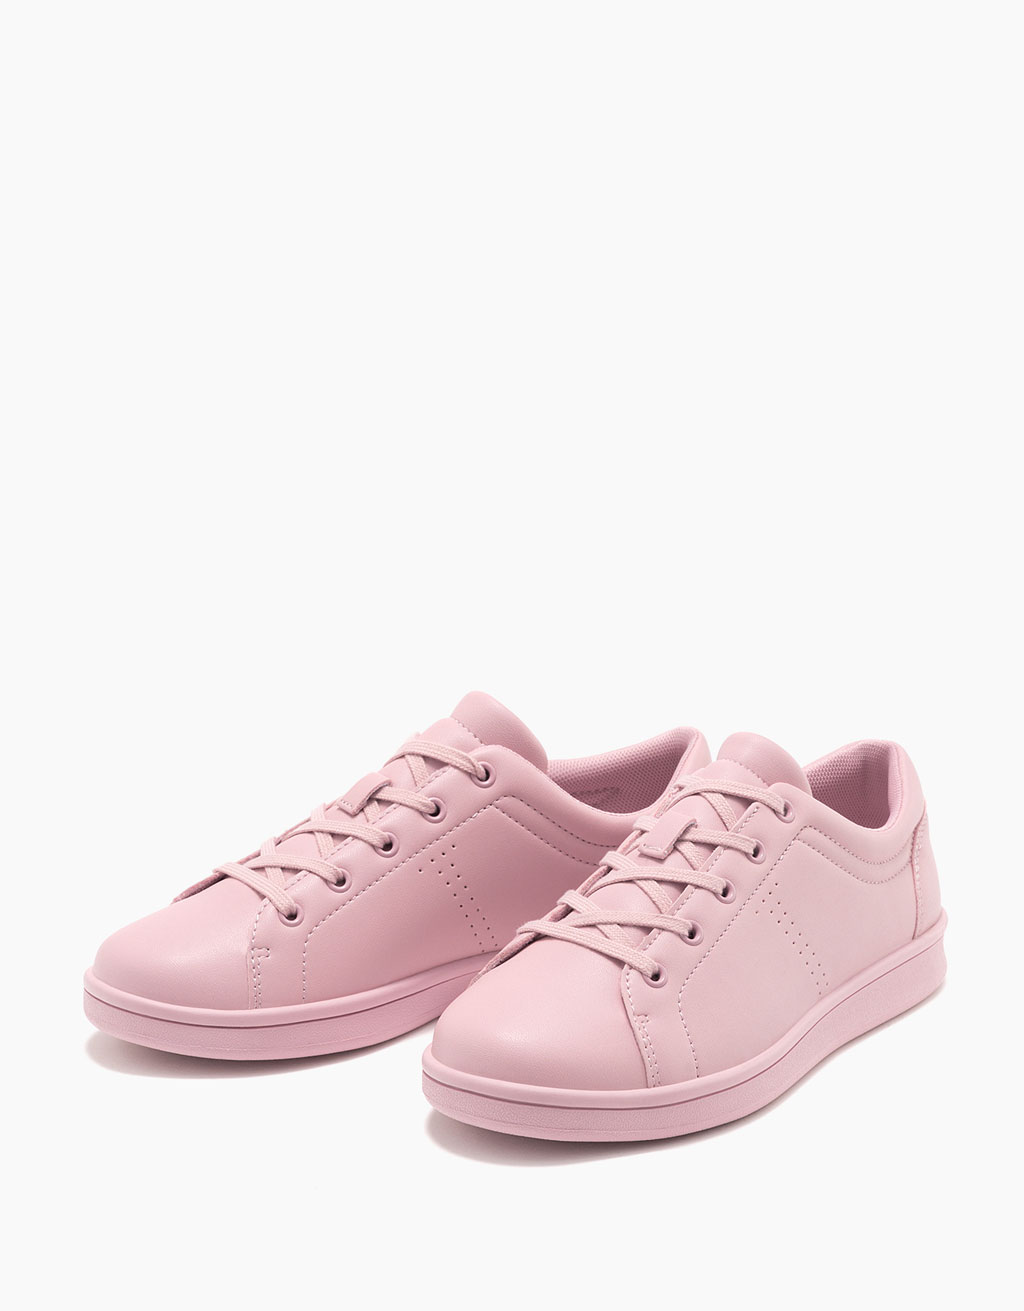 Single coloured lace-up sneakers